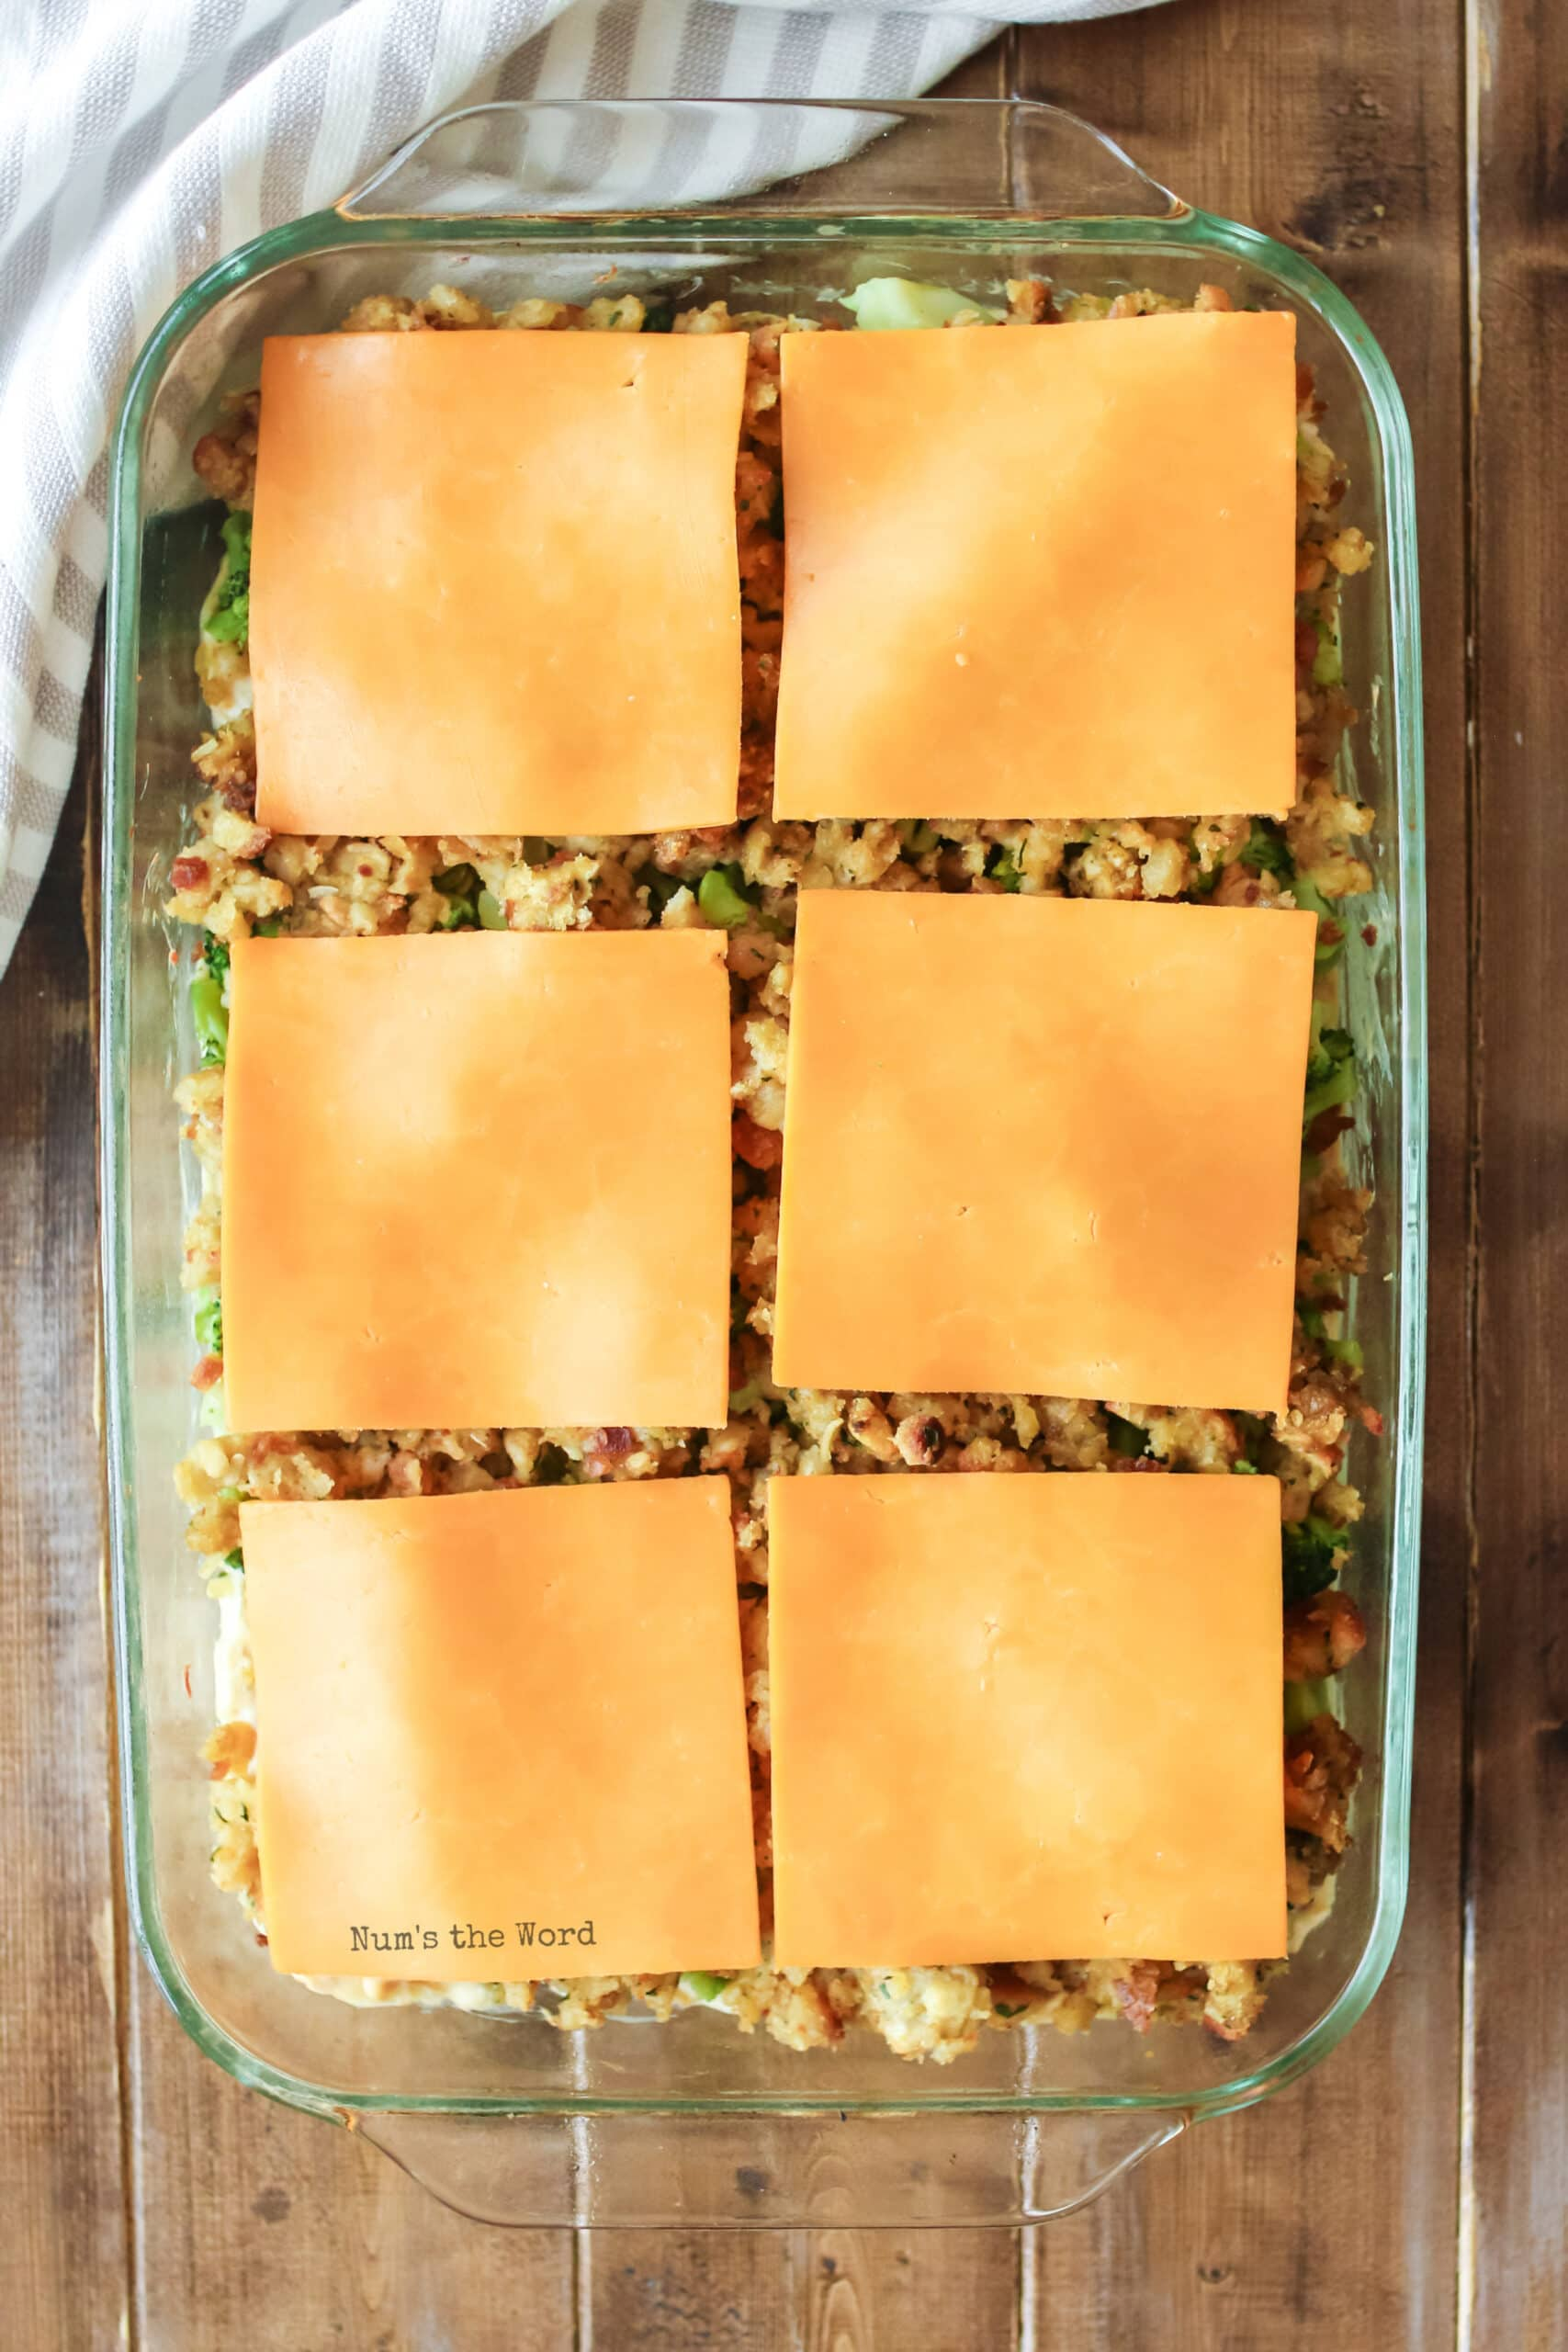 Turkey Casserole - cheese slices placed on top of stuffing in casserole dish.